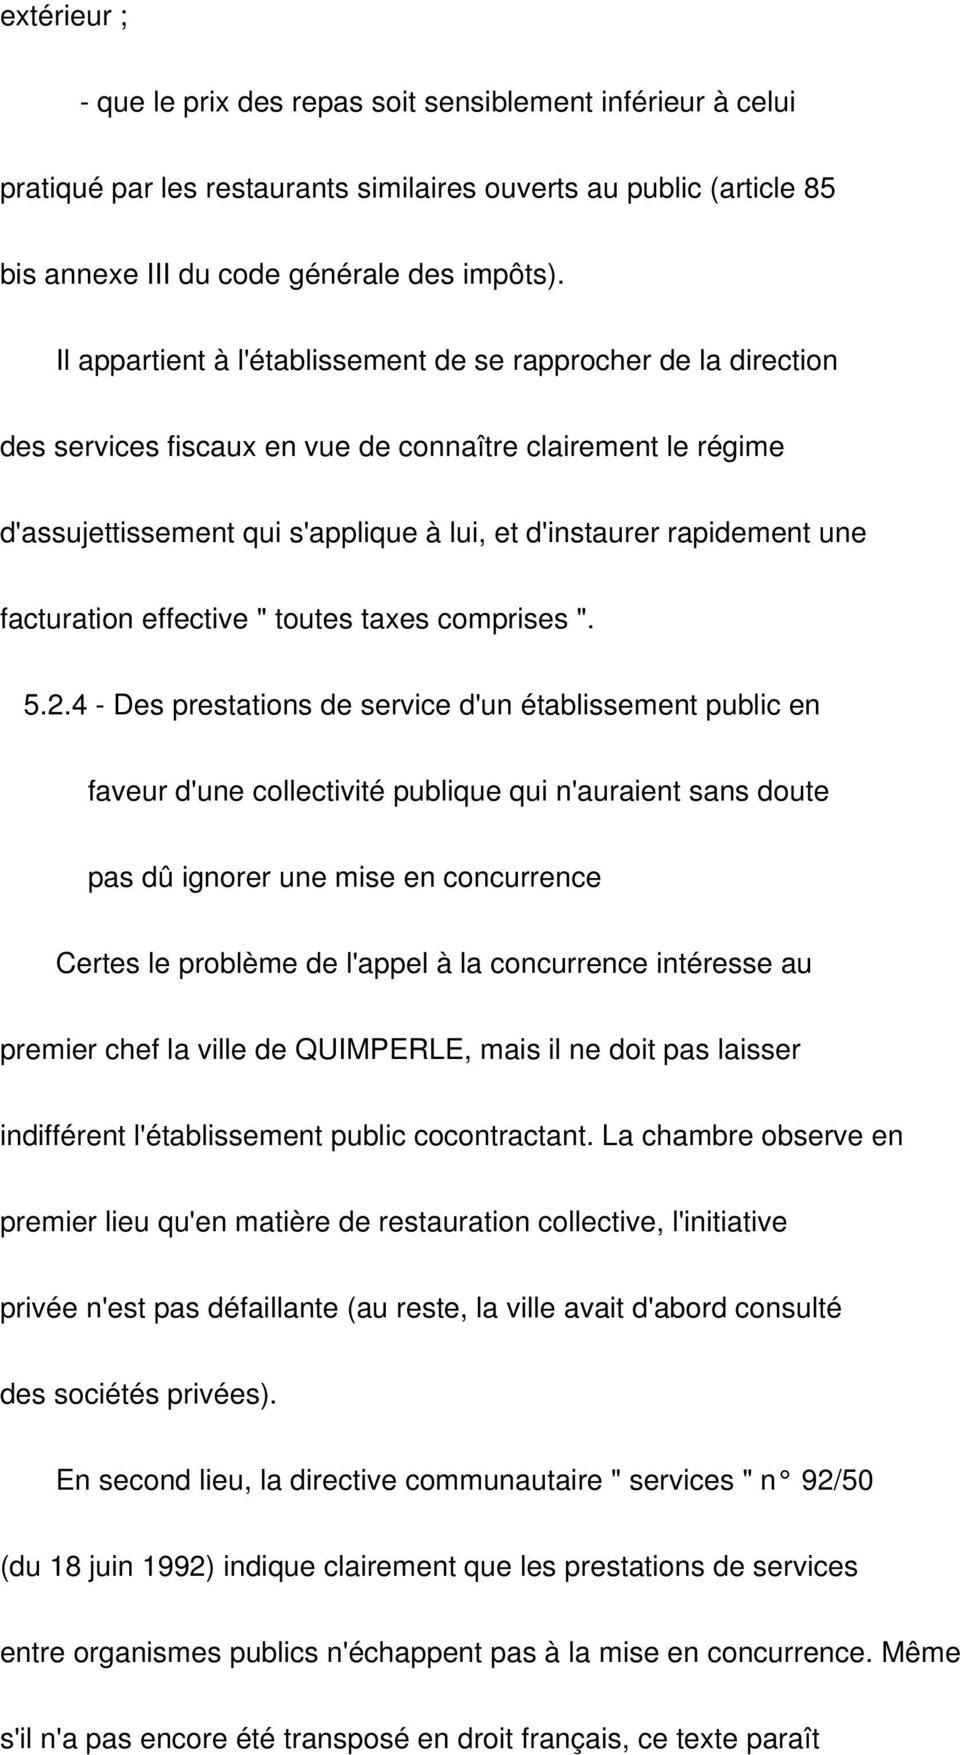 "facturation effective "" toutes taxes comprises "". 5.2."